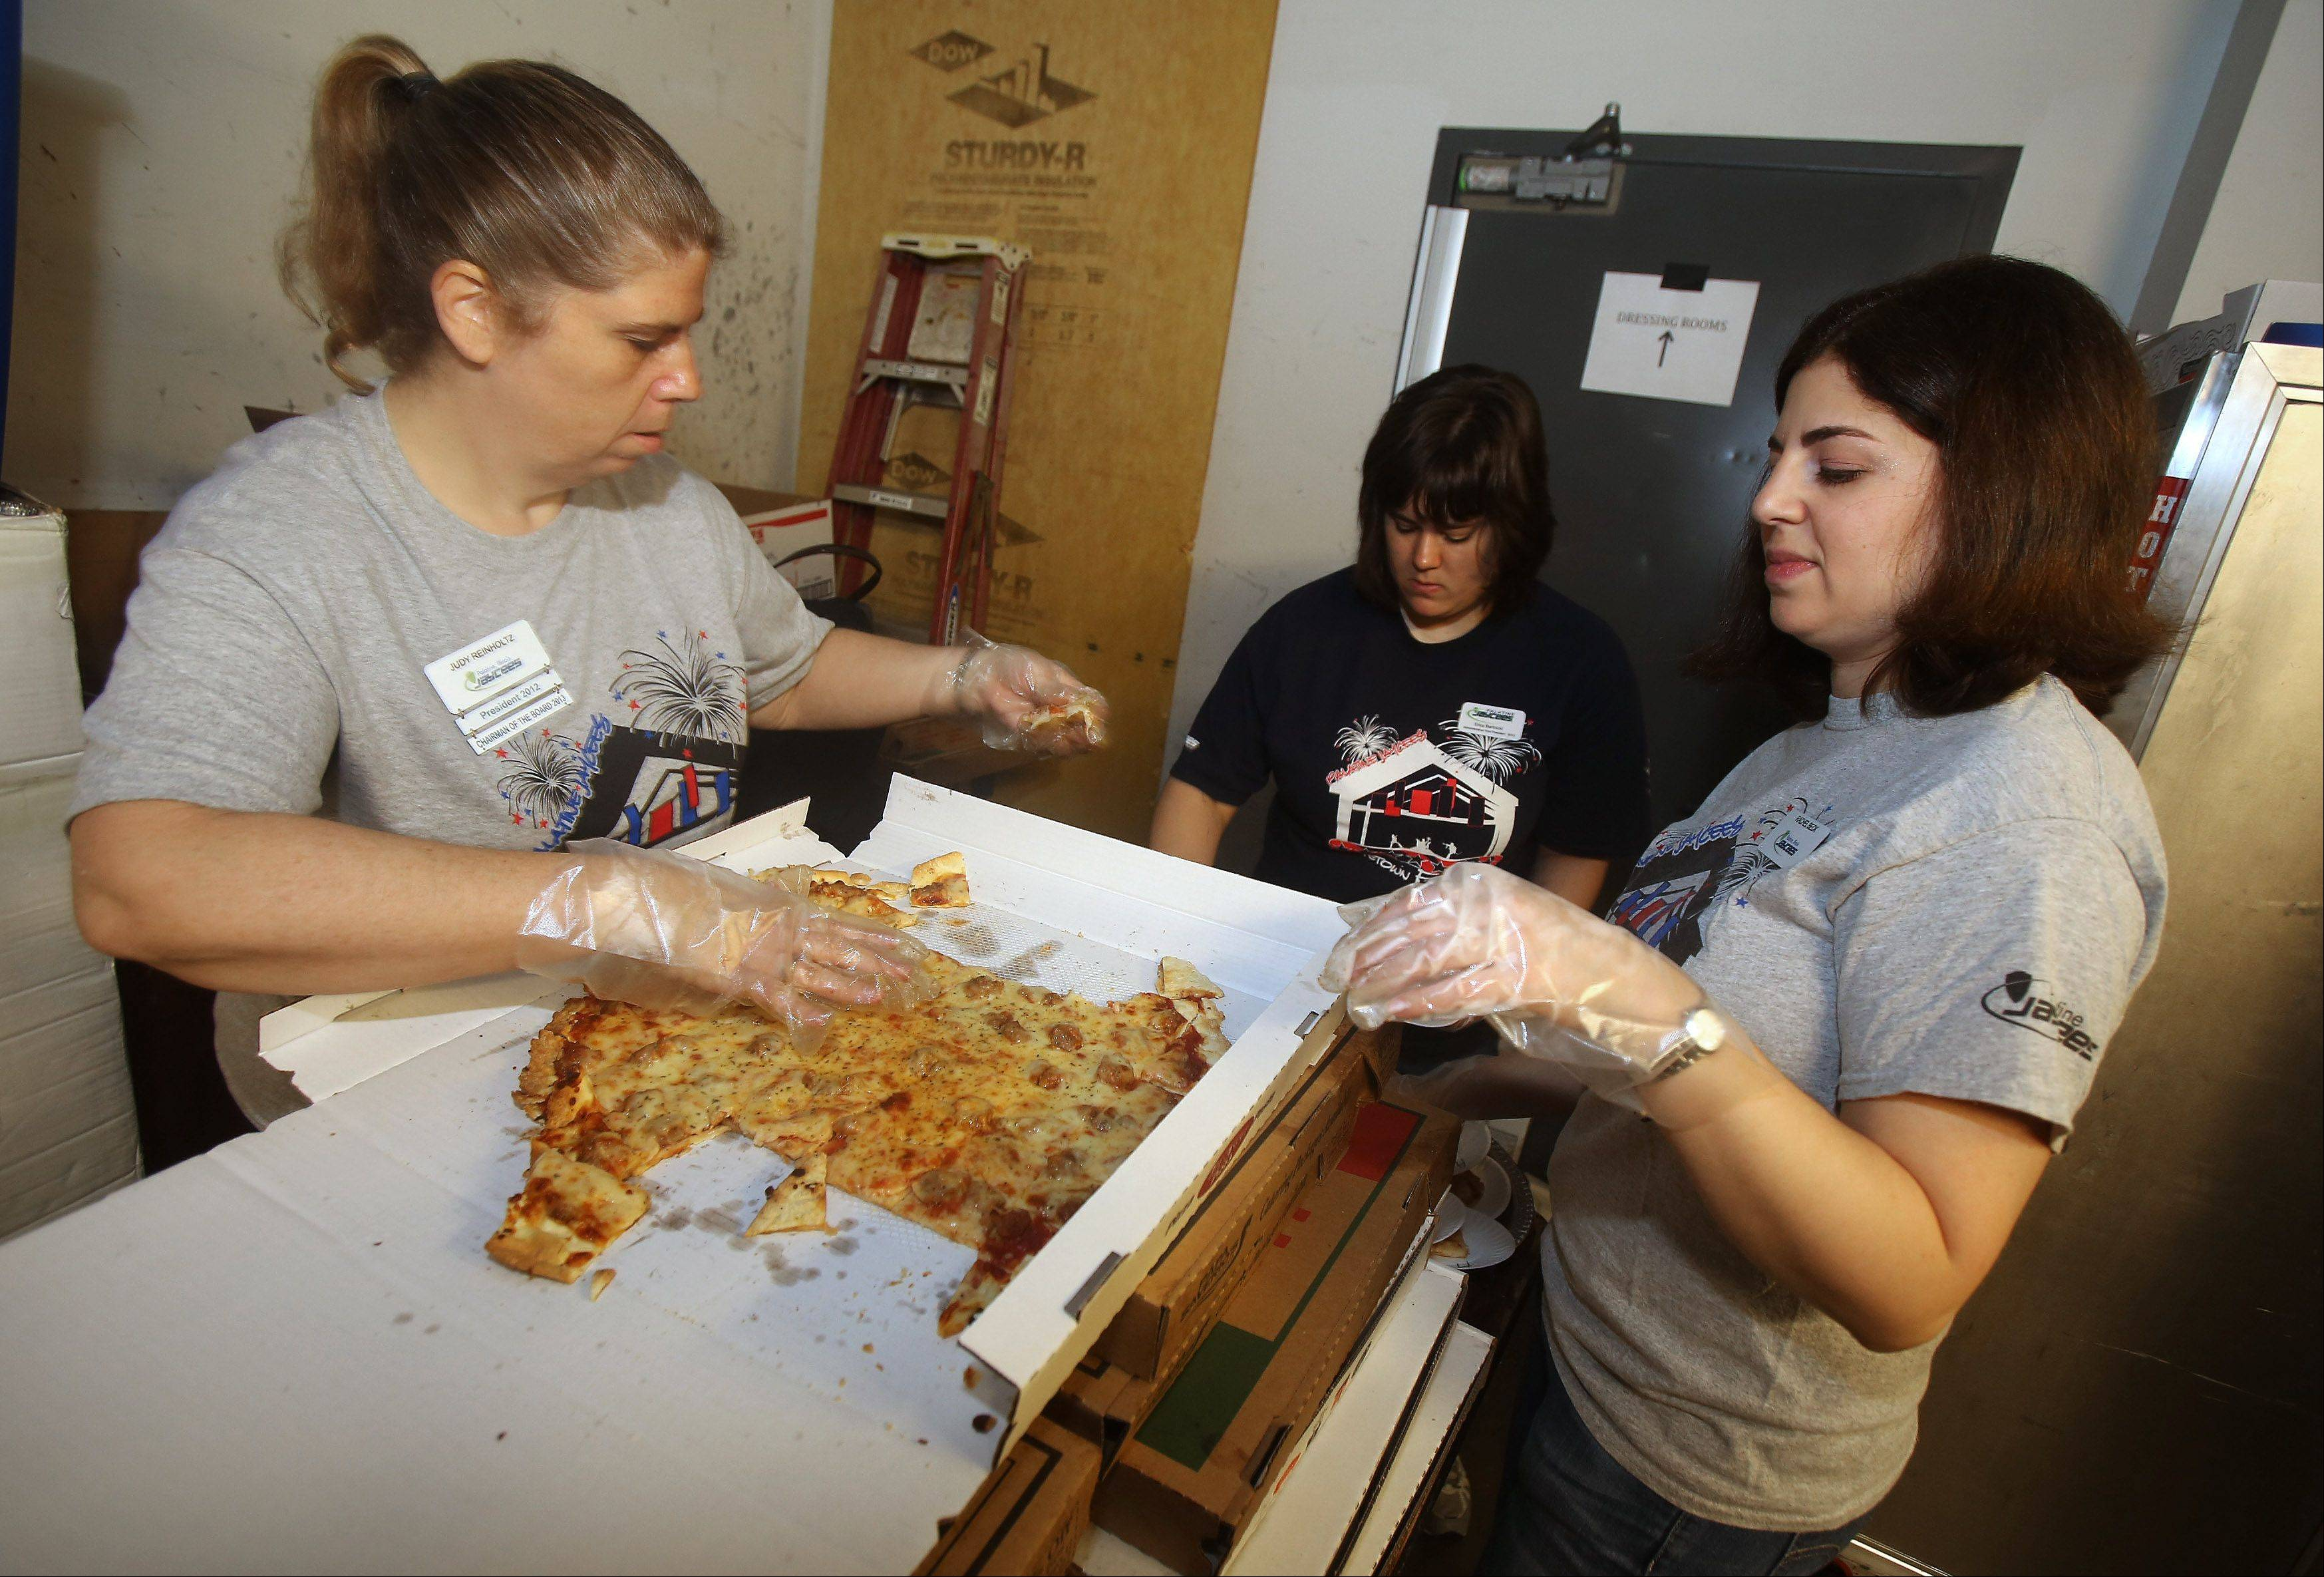 Palatine Jaycees Judy Reinholtz, left, Erika Bartnicki and Rachel Beck prepare pizza Sunday during the Palatine Jaycees Pizza Showdown at Durty Nellie's Bar and Grill. The Palatine Jaycees hold the annual contest to determine who makes the best pizza in the area. This year's winner was Vini's Pizza.